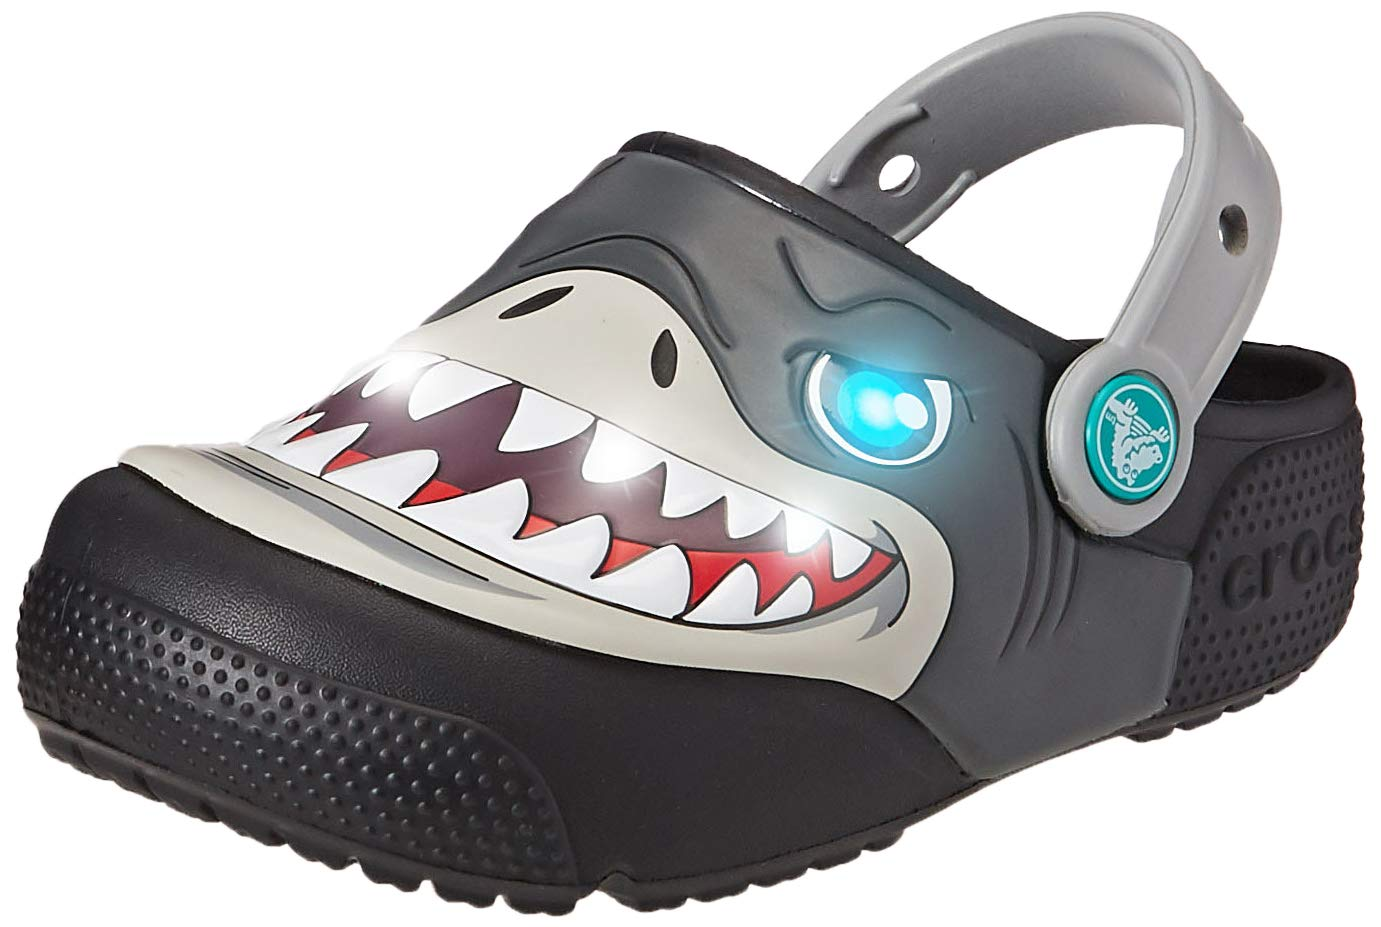 Crocs Baby Kids' Fun Lab Light-Up Clog, Black, 9 M US Toddler